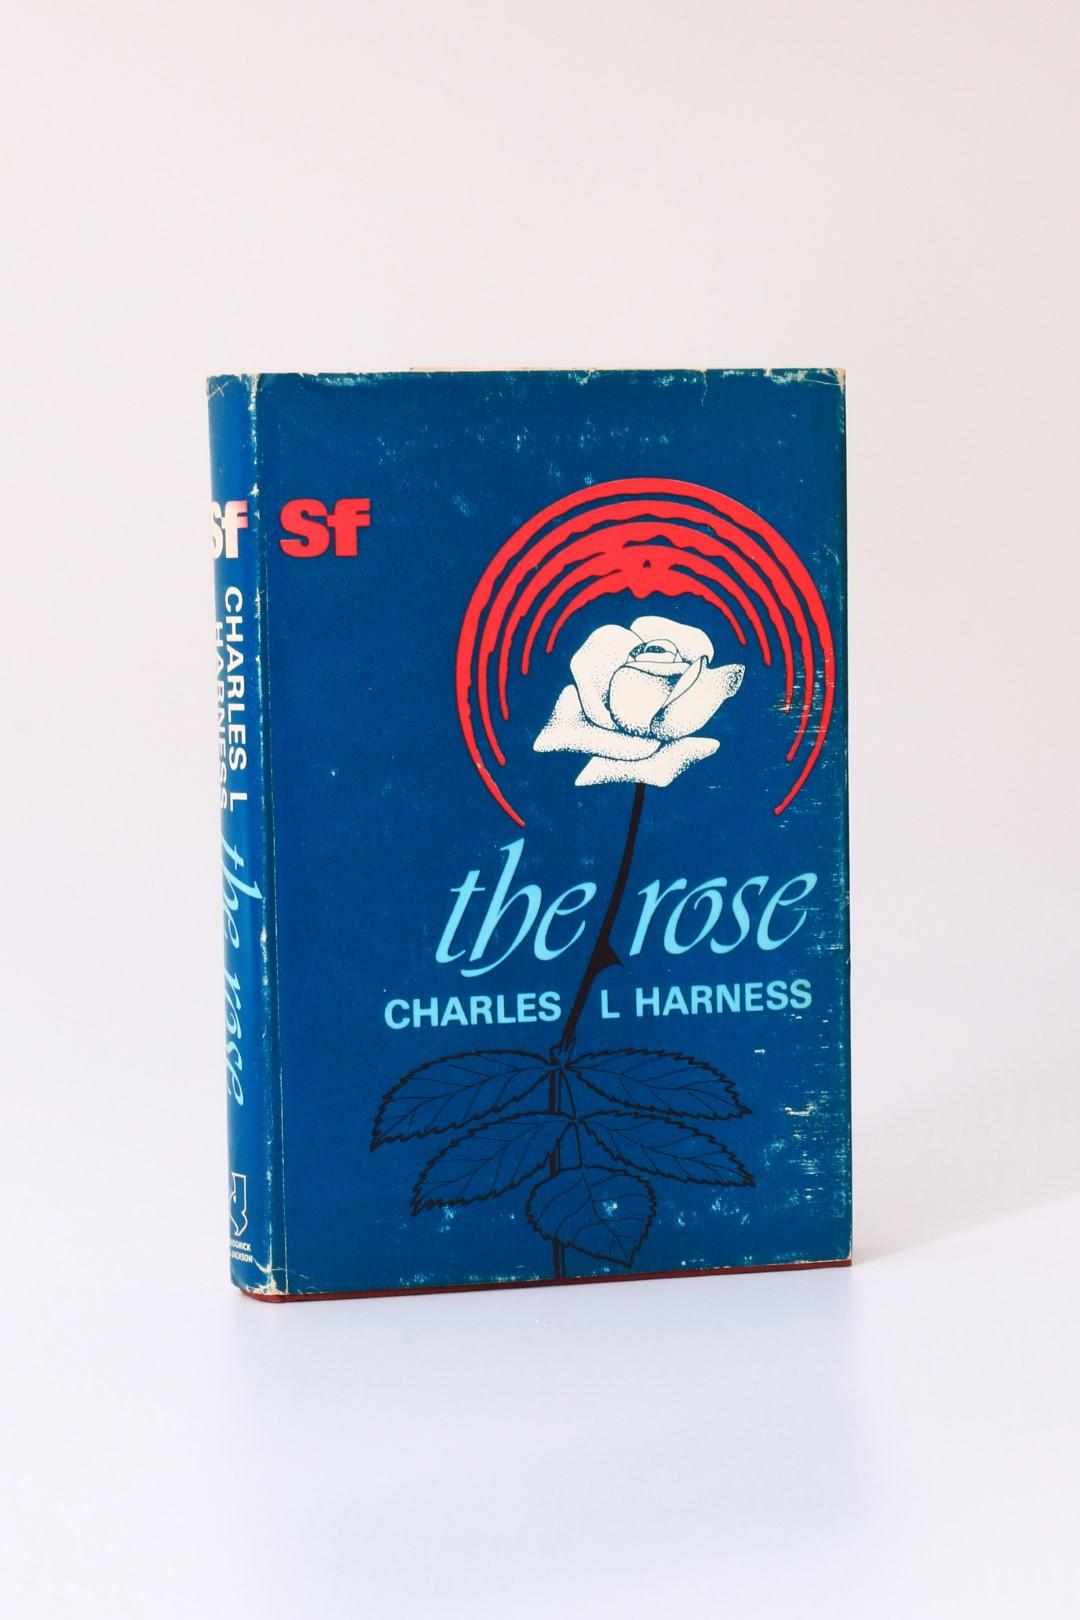 Charles L. Harness - The Rose - Sidgwick & Jackson, 1968, First Edition.